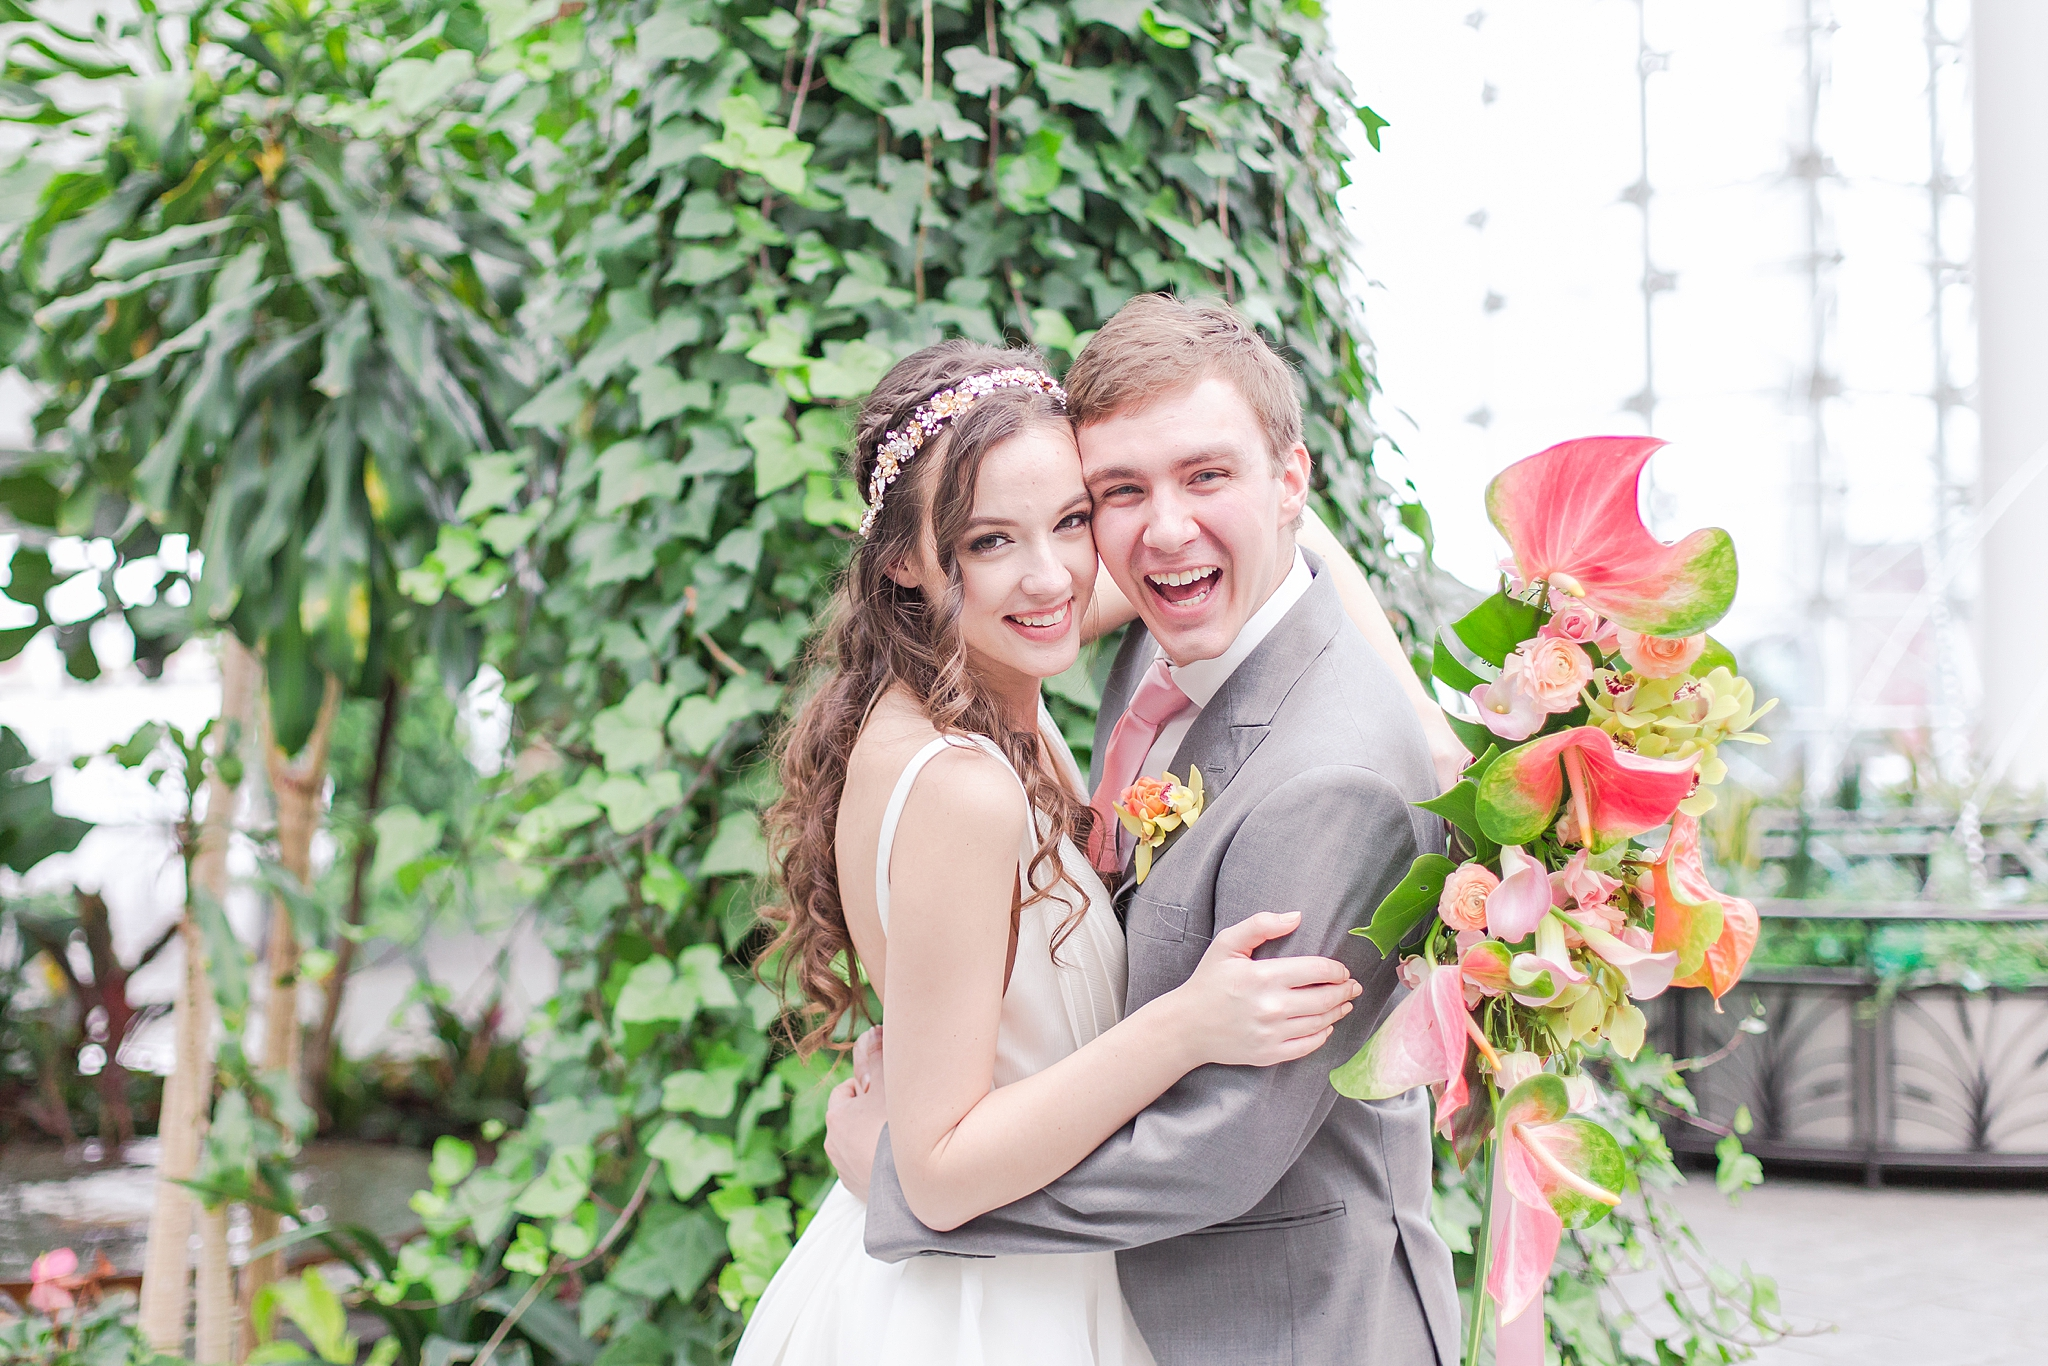 colorful-tropical-wedding-photos-at-the-crystal-gardens-in-chicago-illinois-by-courtney-carolyn-photography_0018.jpg